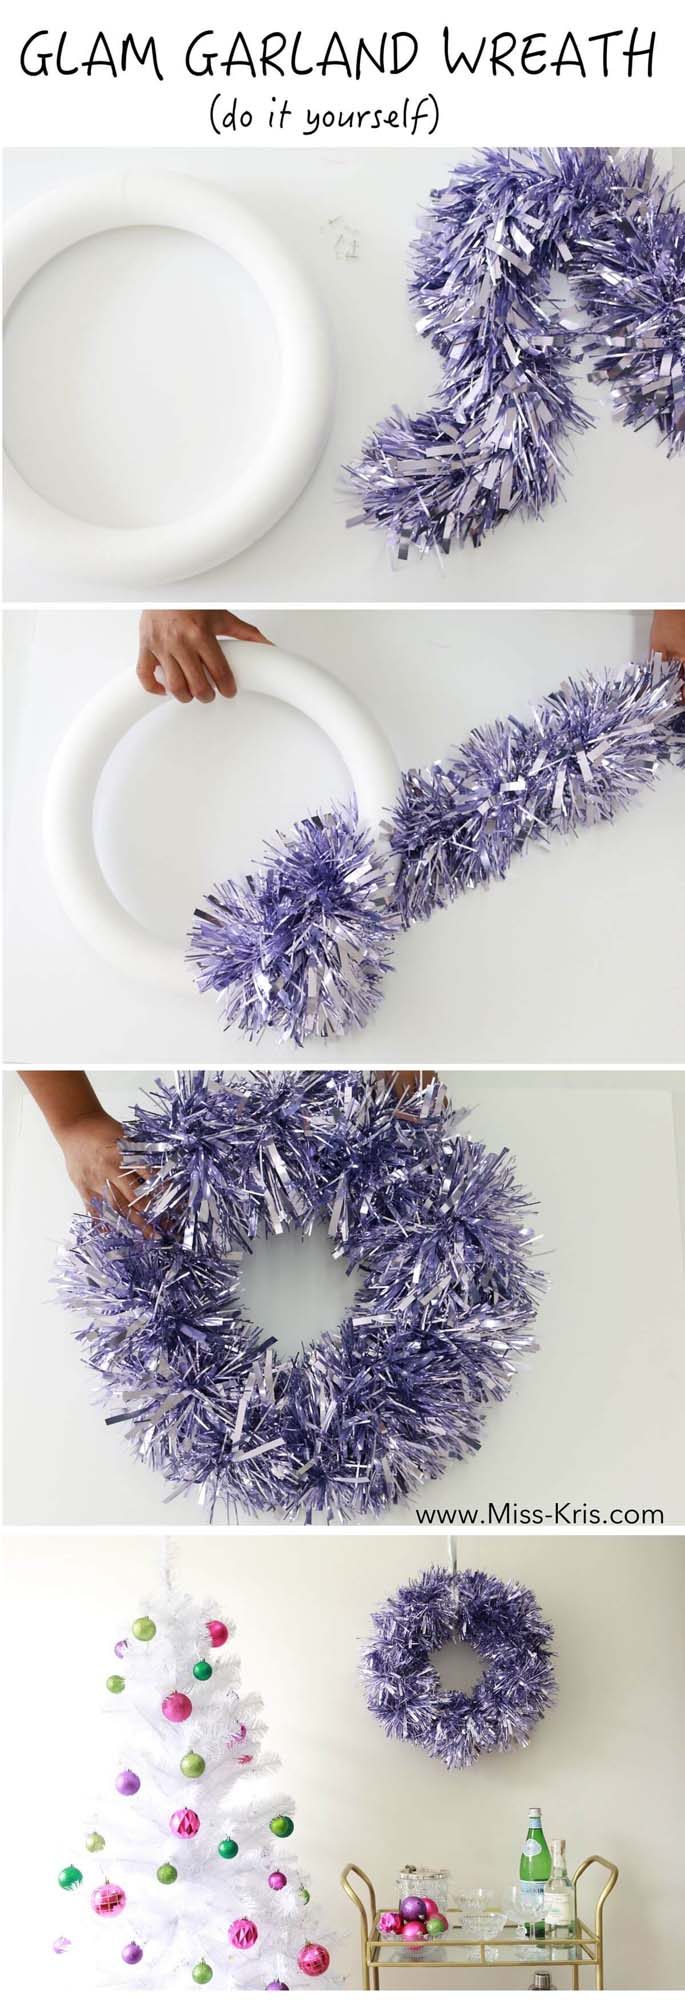 Add Some Sparkle with a Tinsel Wreath #Christmas #crafts #decorations #decorhomeideas